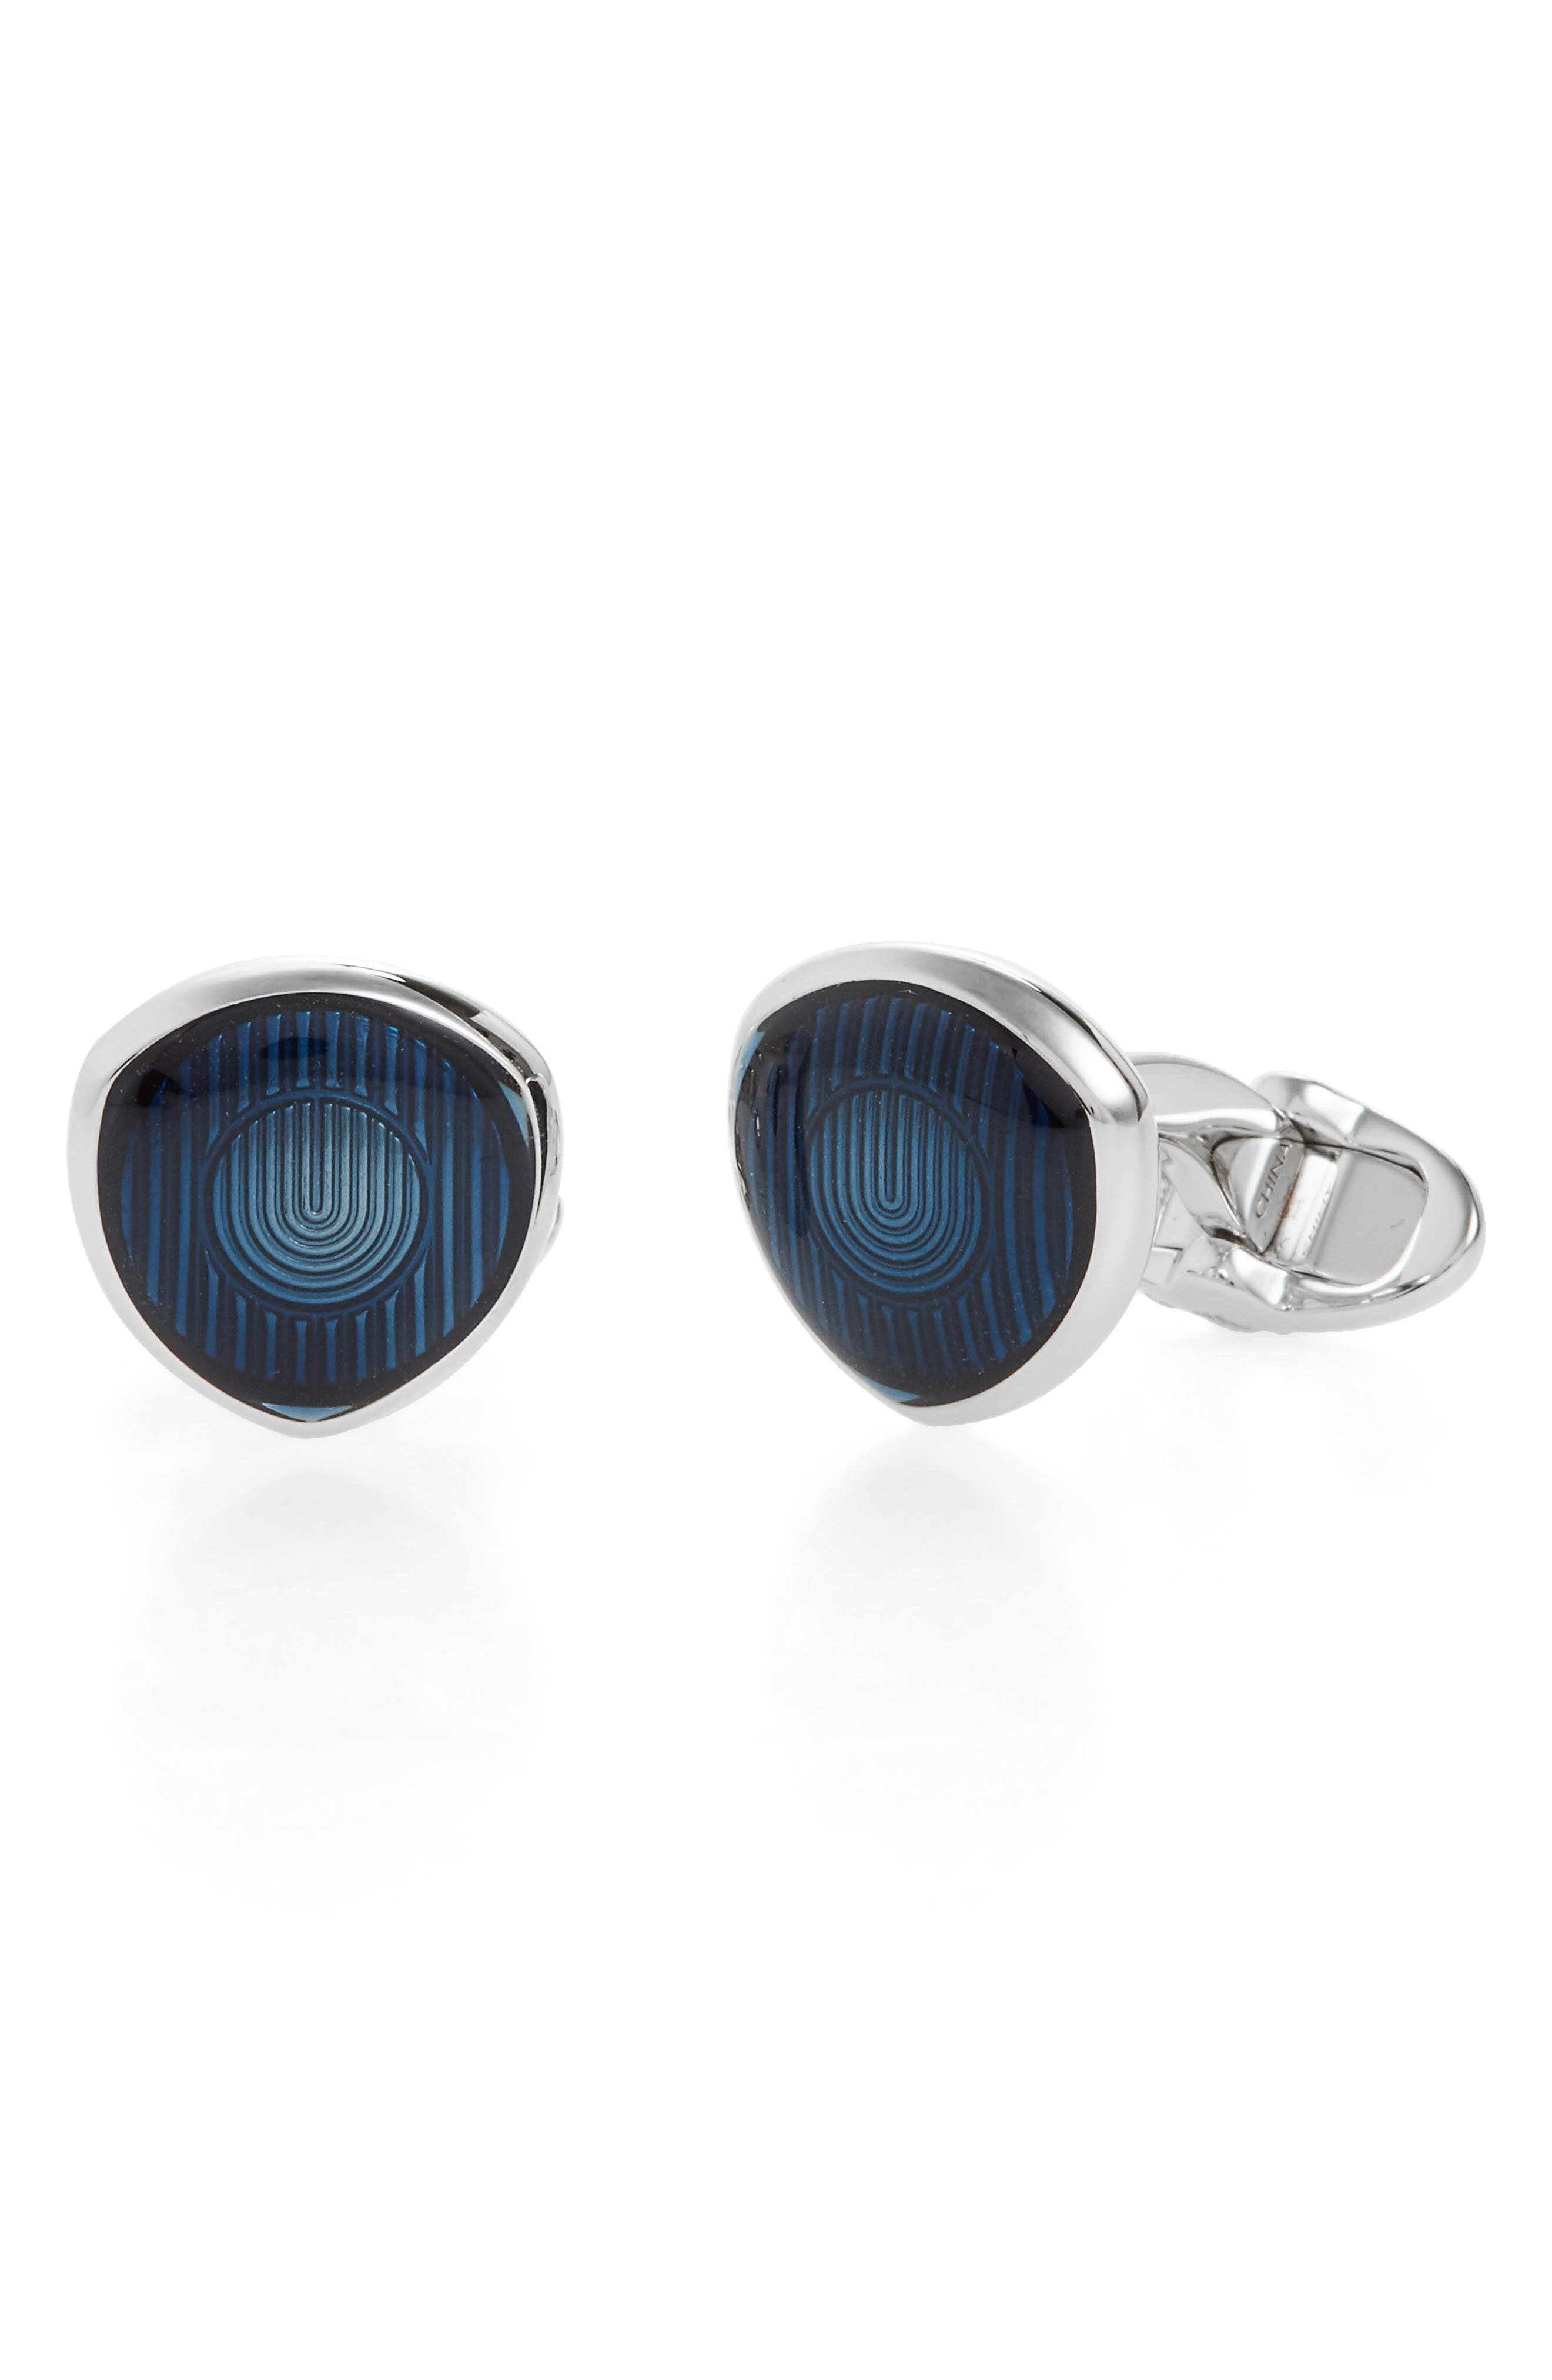 Headlamp Cuff Links,                         Main,                         color, 040